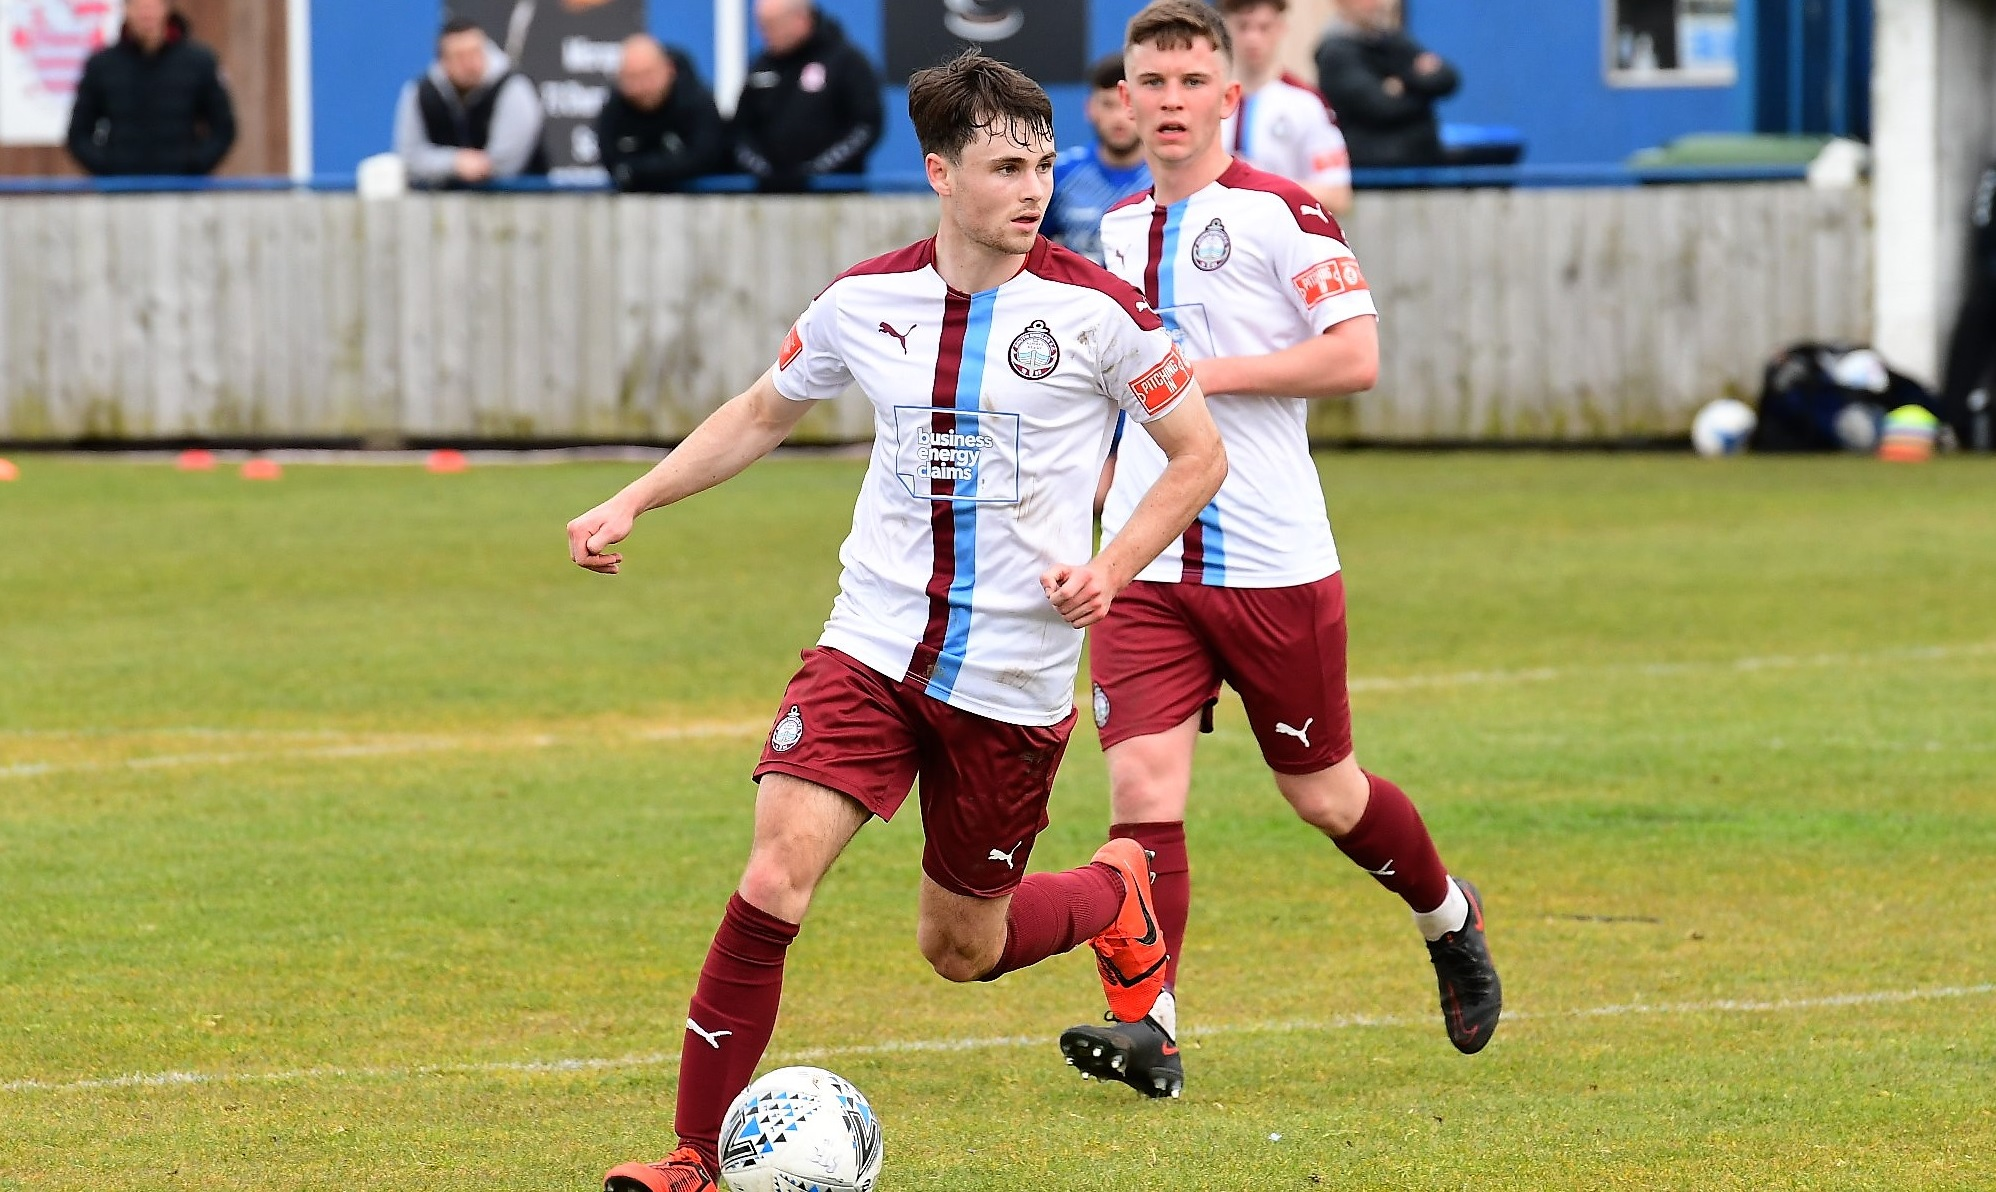 South Shields complete signing of Conor Tee